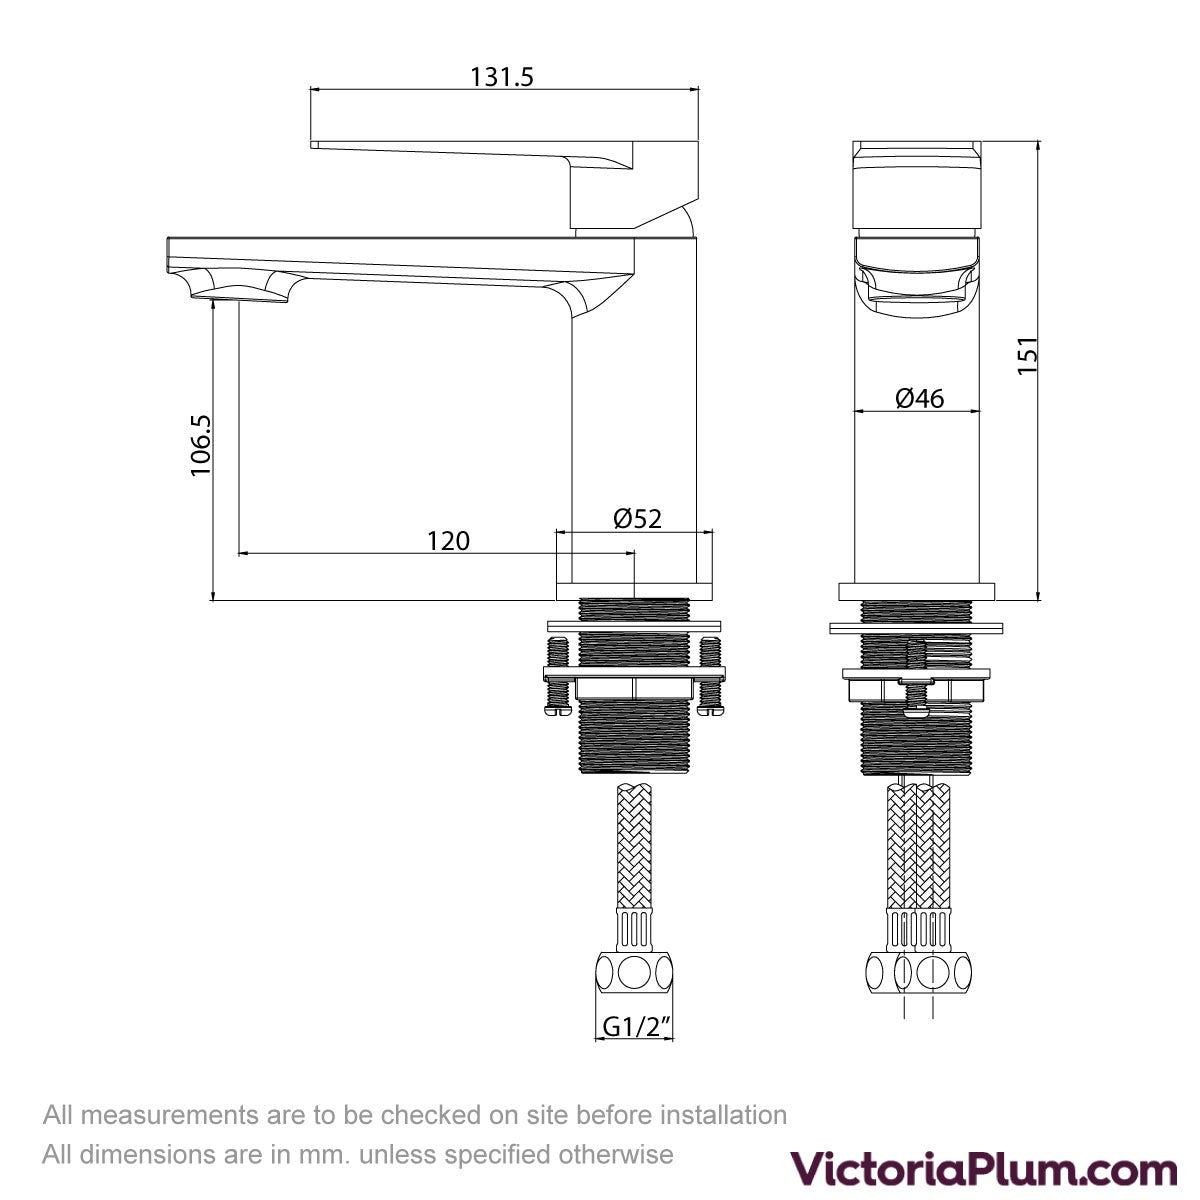 Dimensions for Kirke Combo basin mixer tap with click clack waste